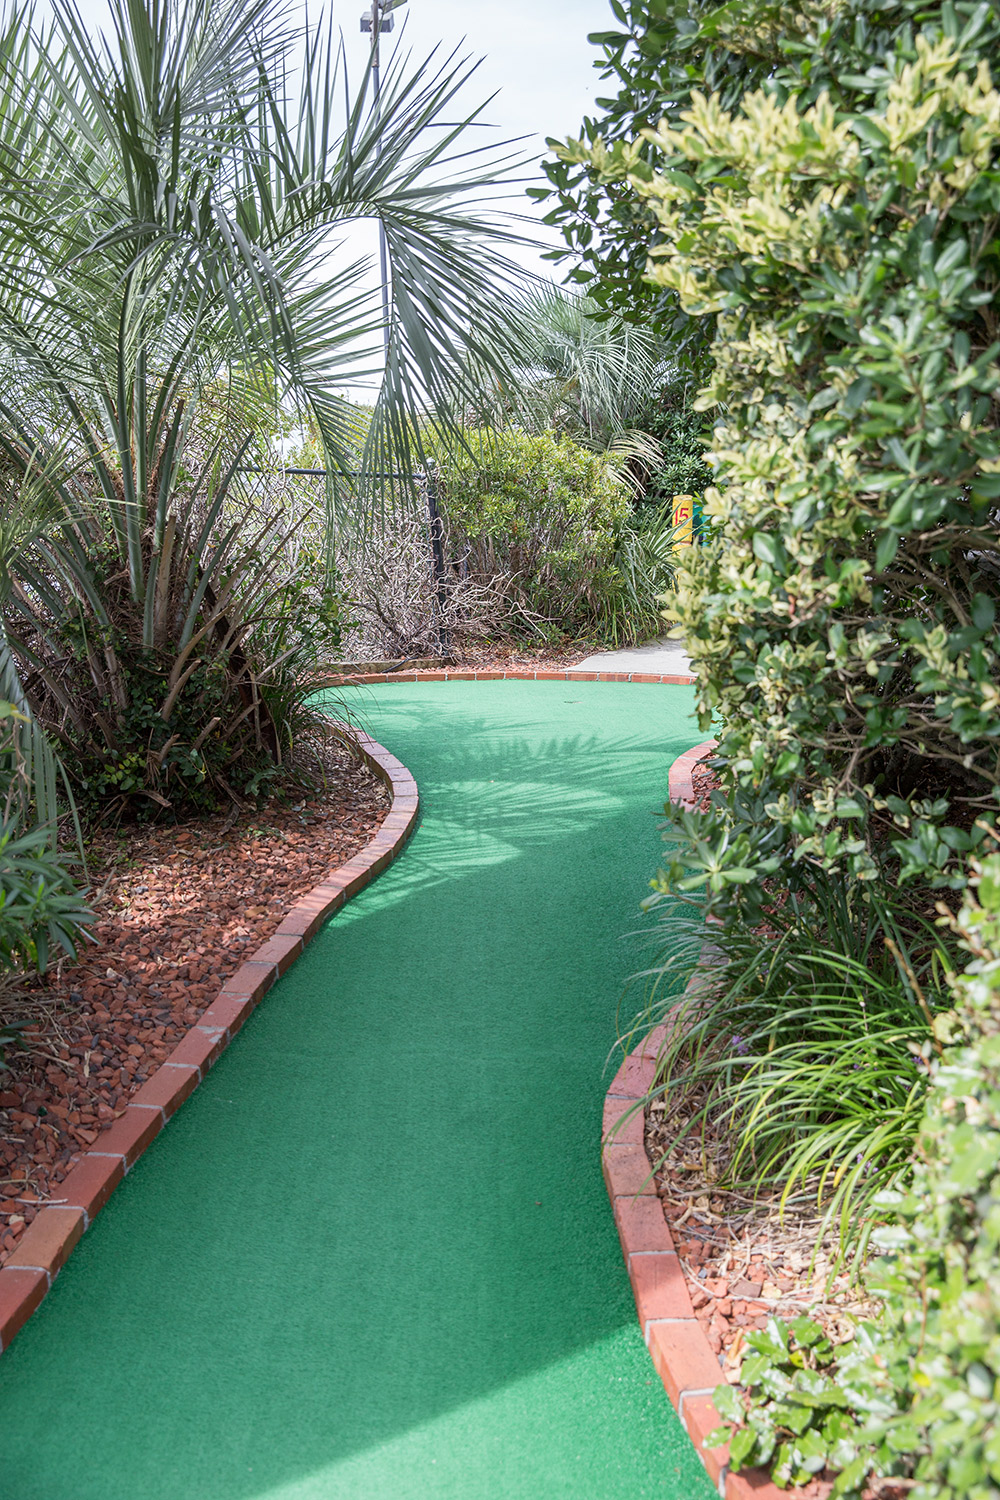 south carolina miniature golf courses